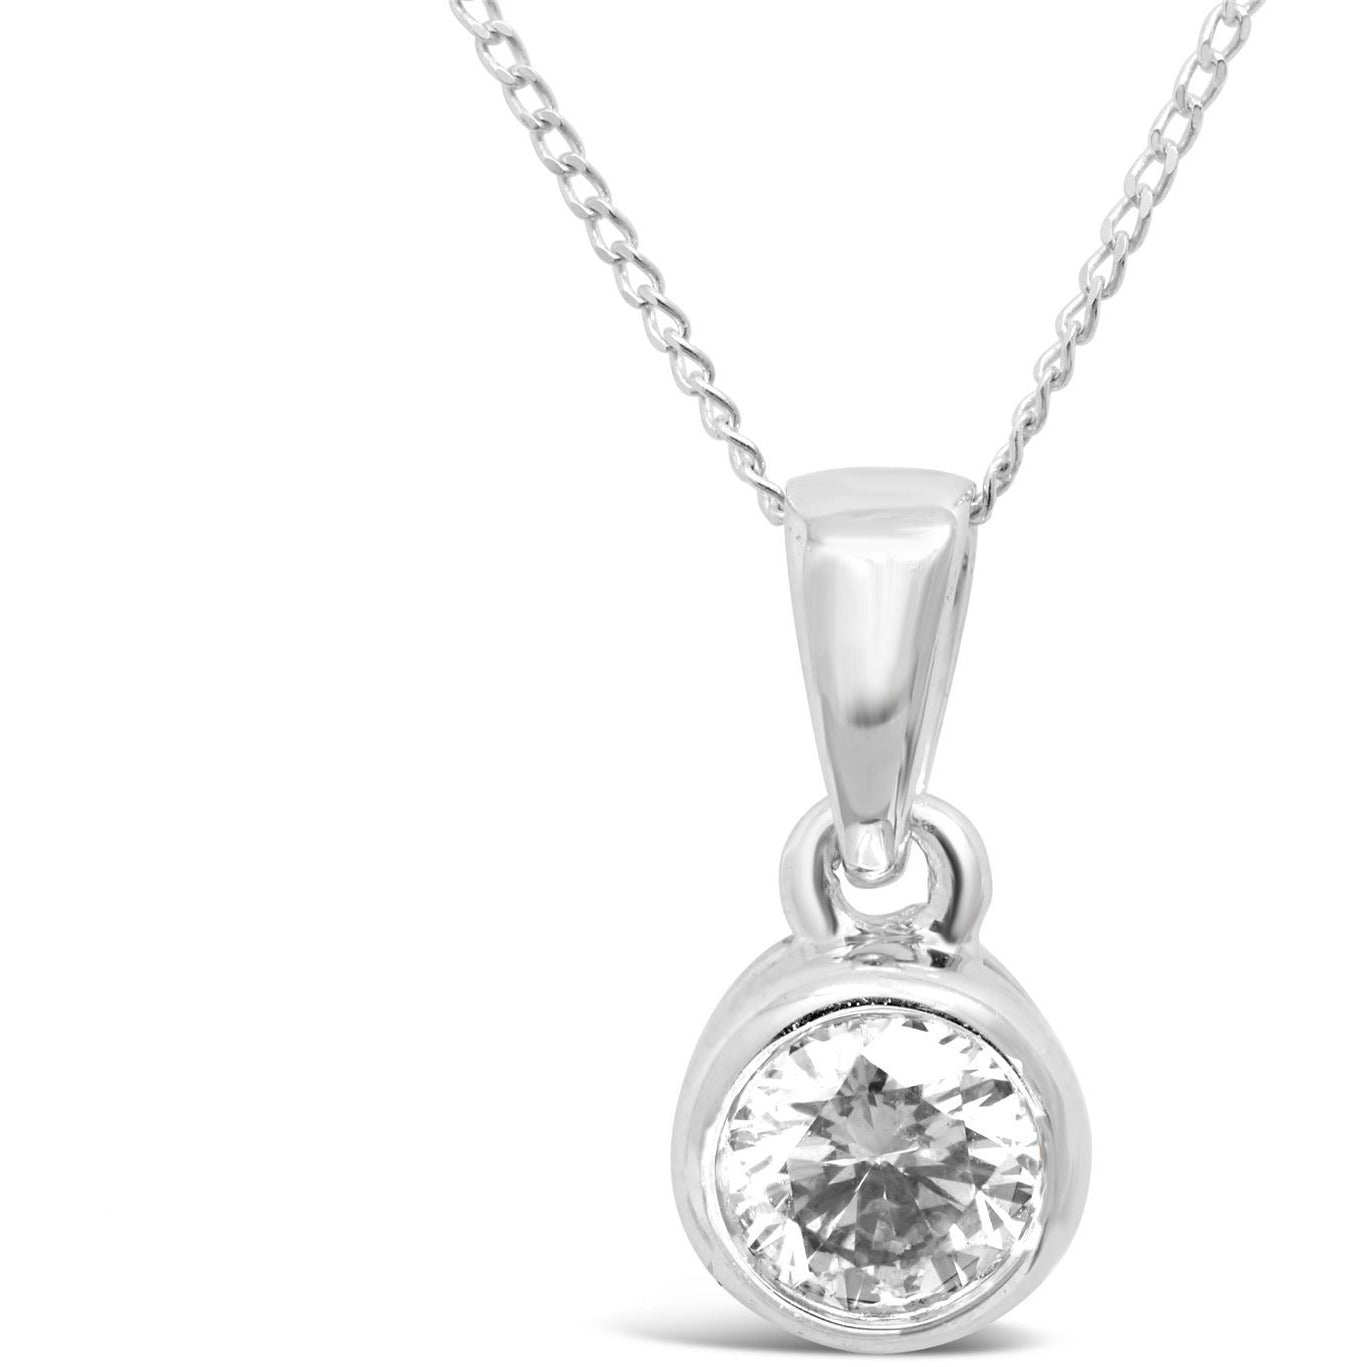 white gold necklace pendant with bezet set diamond for women - G&S Diamonds